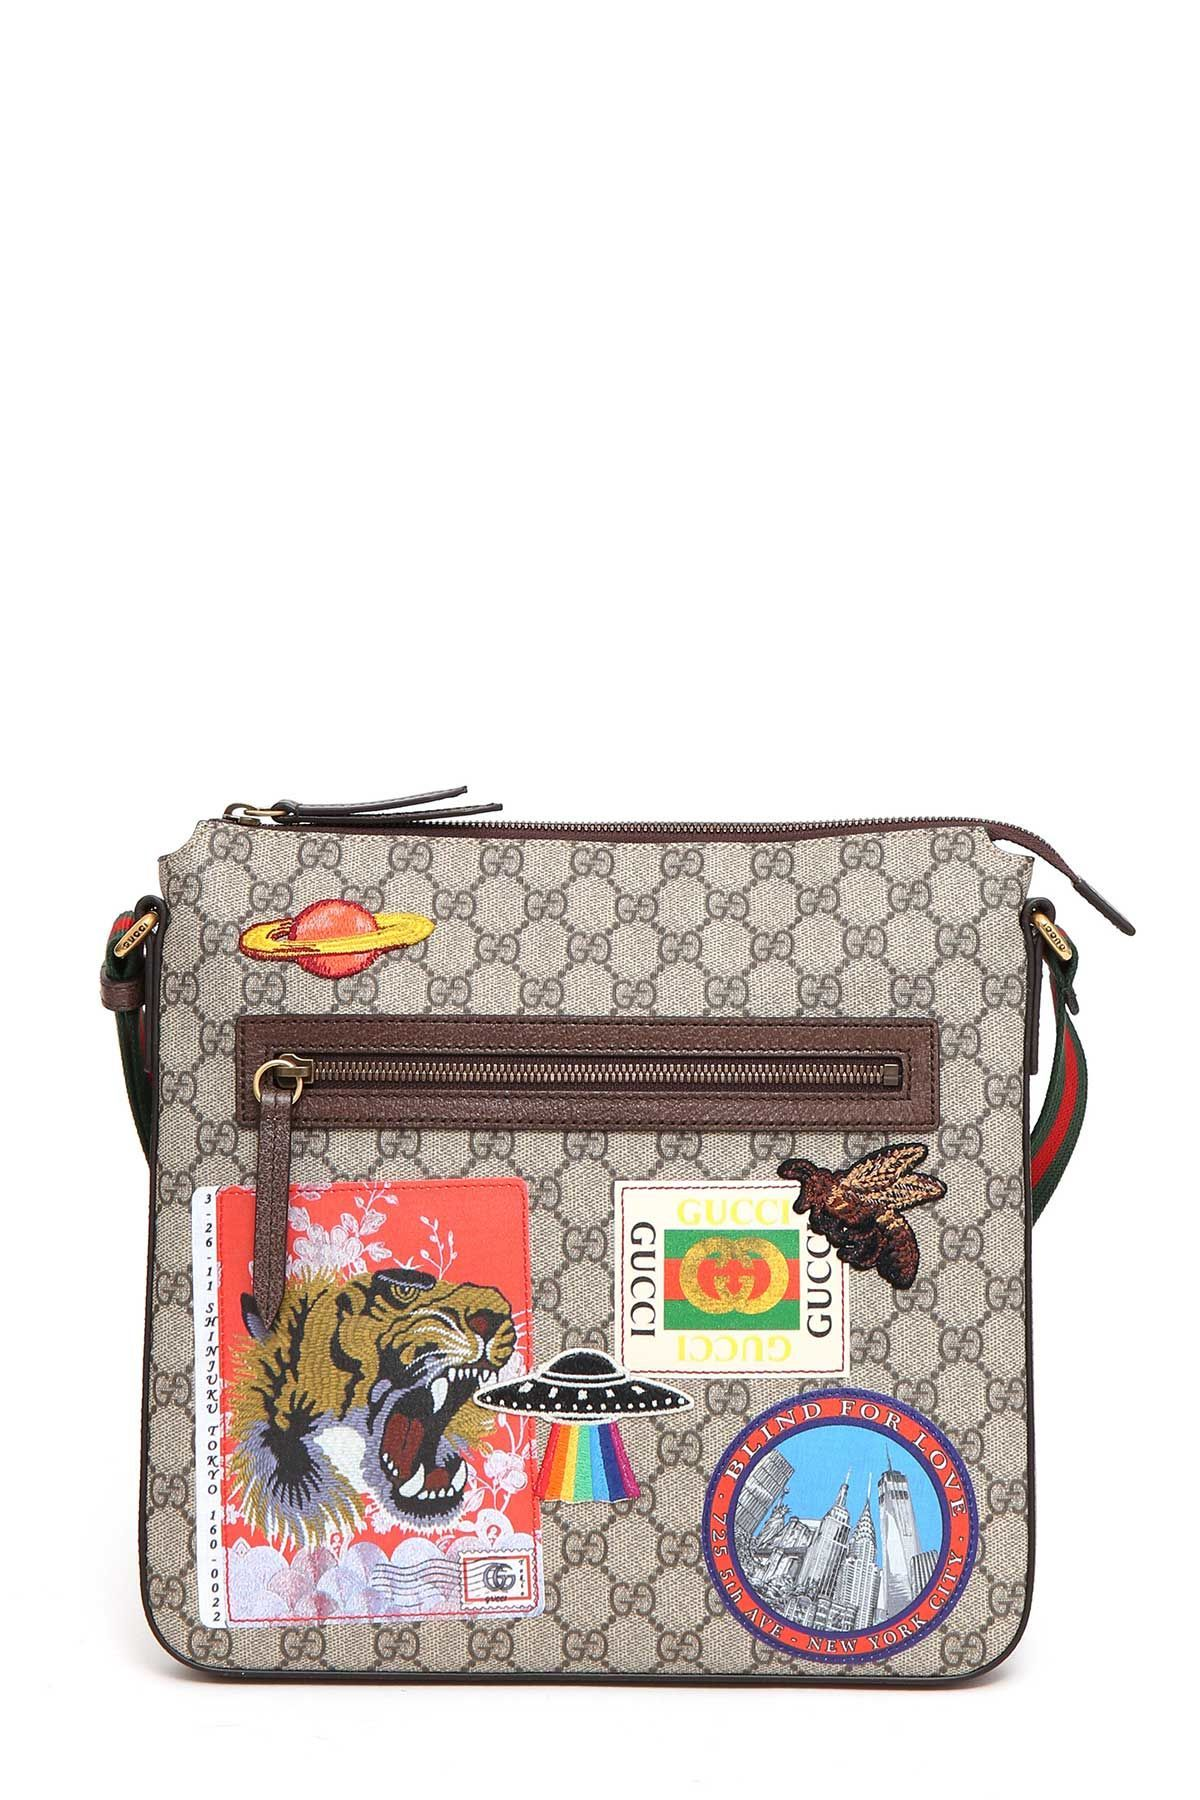 23bc568faba GUCCI GG SUPREME FABRIC COURRIER BAG.  gucci  bags  shoulder bags  leather